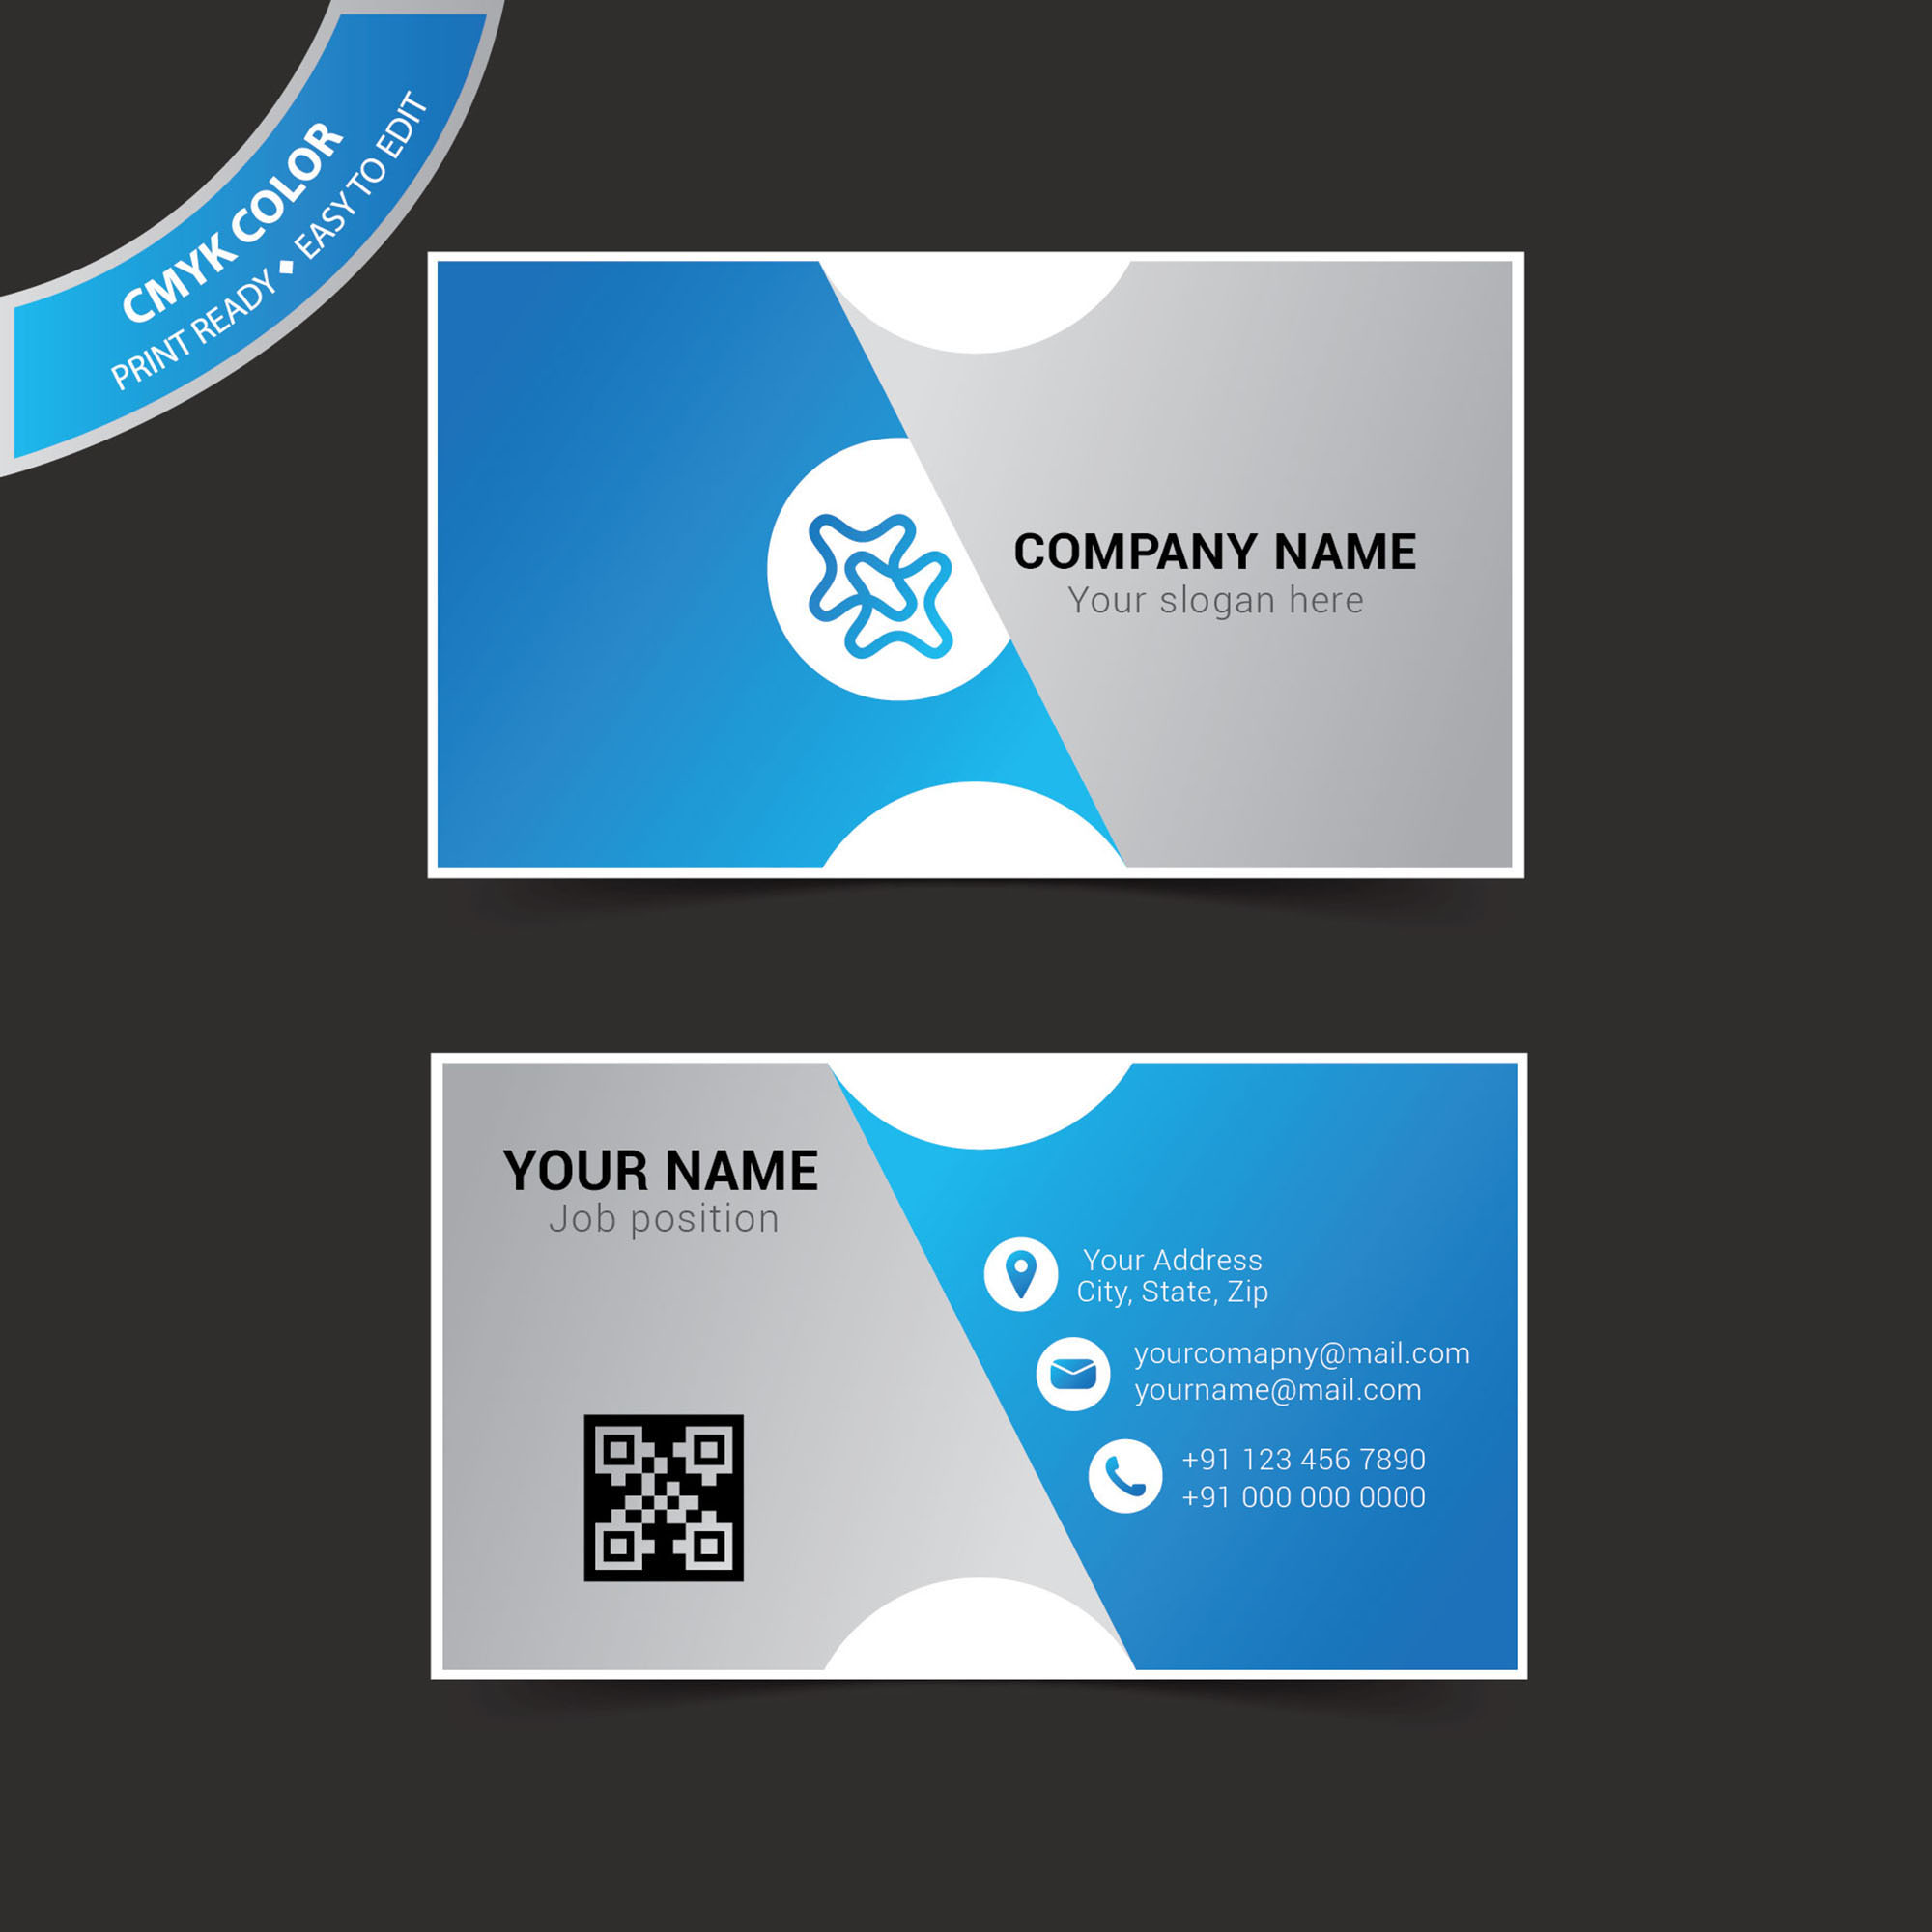 Business card template illustrator free vector wisxi abstract business card design business creative graphic layout template wajeb